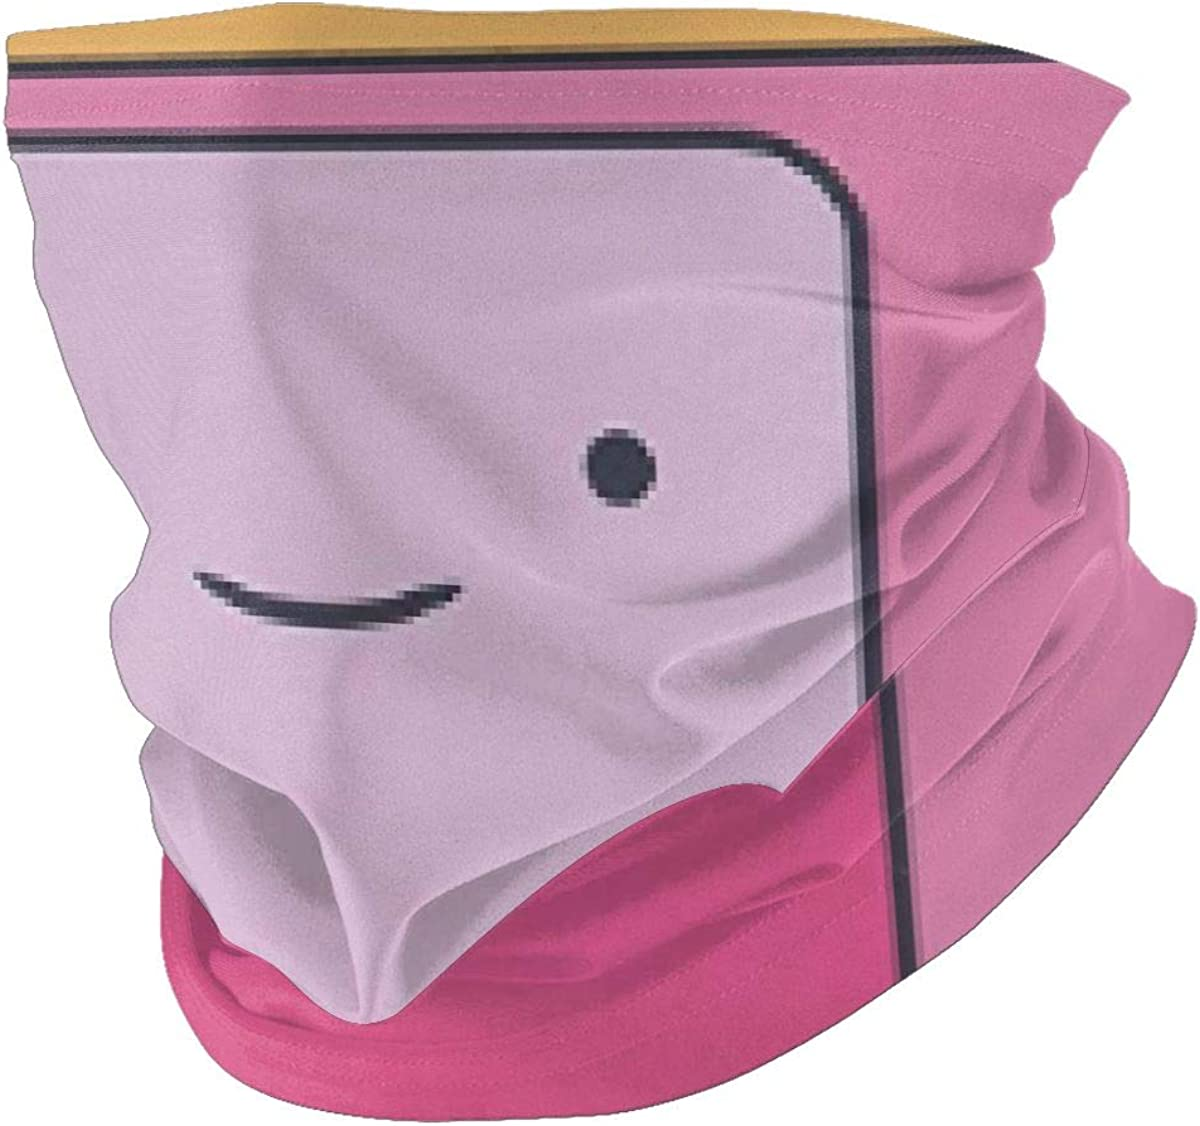 Princess Bubblegum Anti Pollution Protective Face Shield Novelty Adult Face Cover